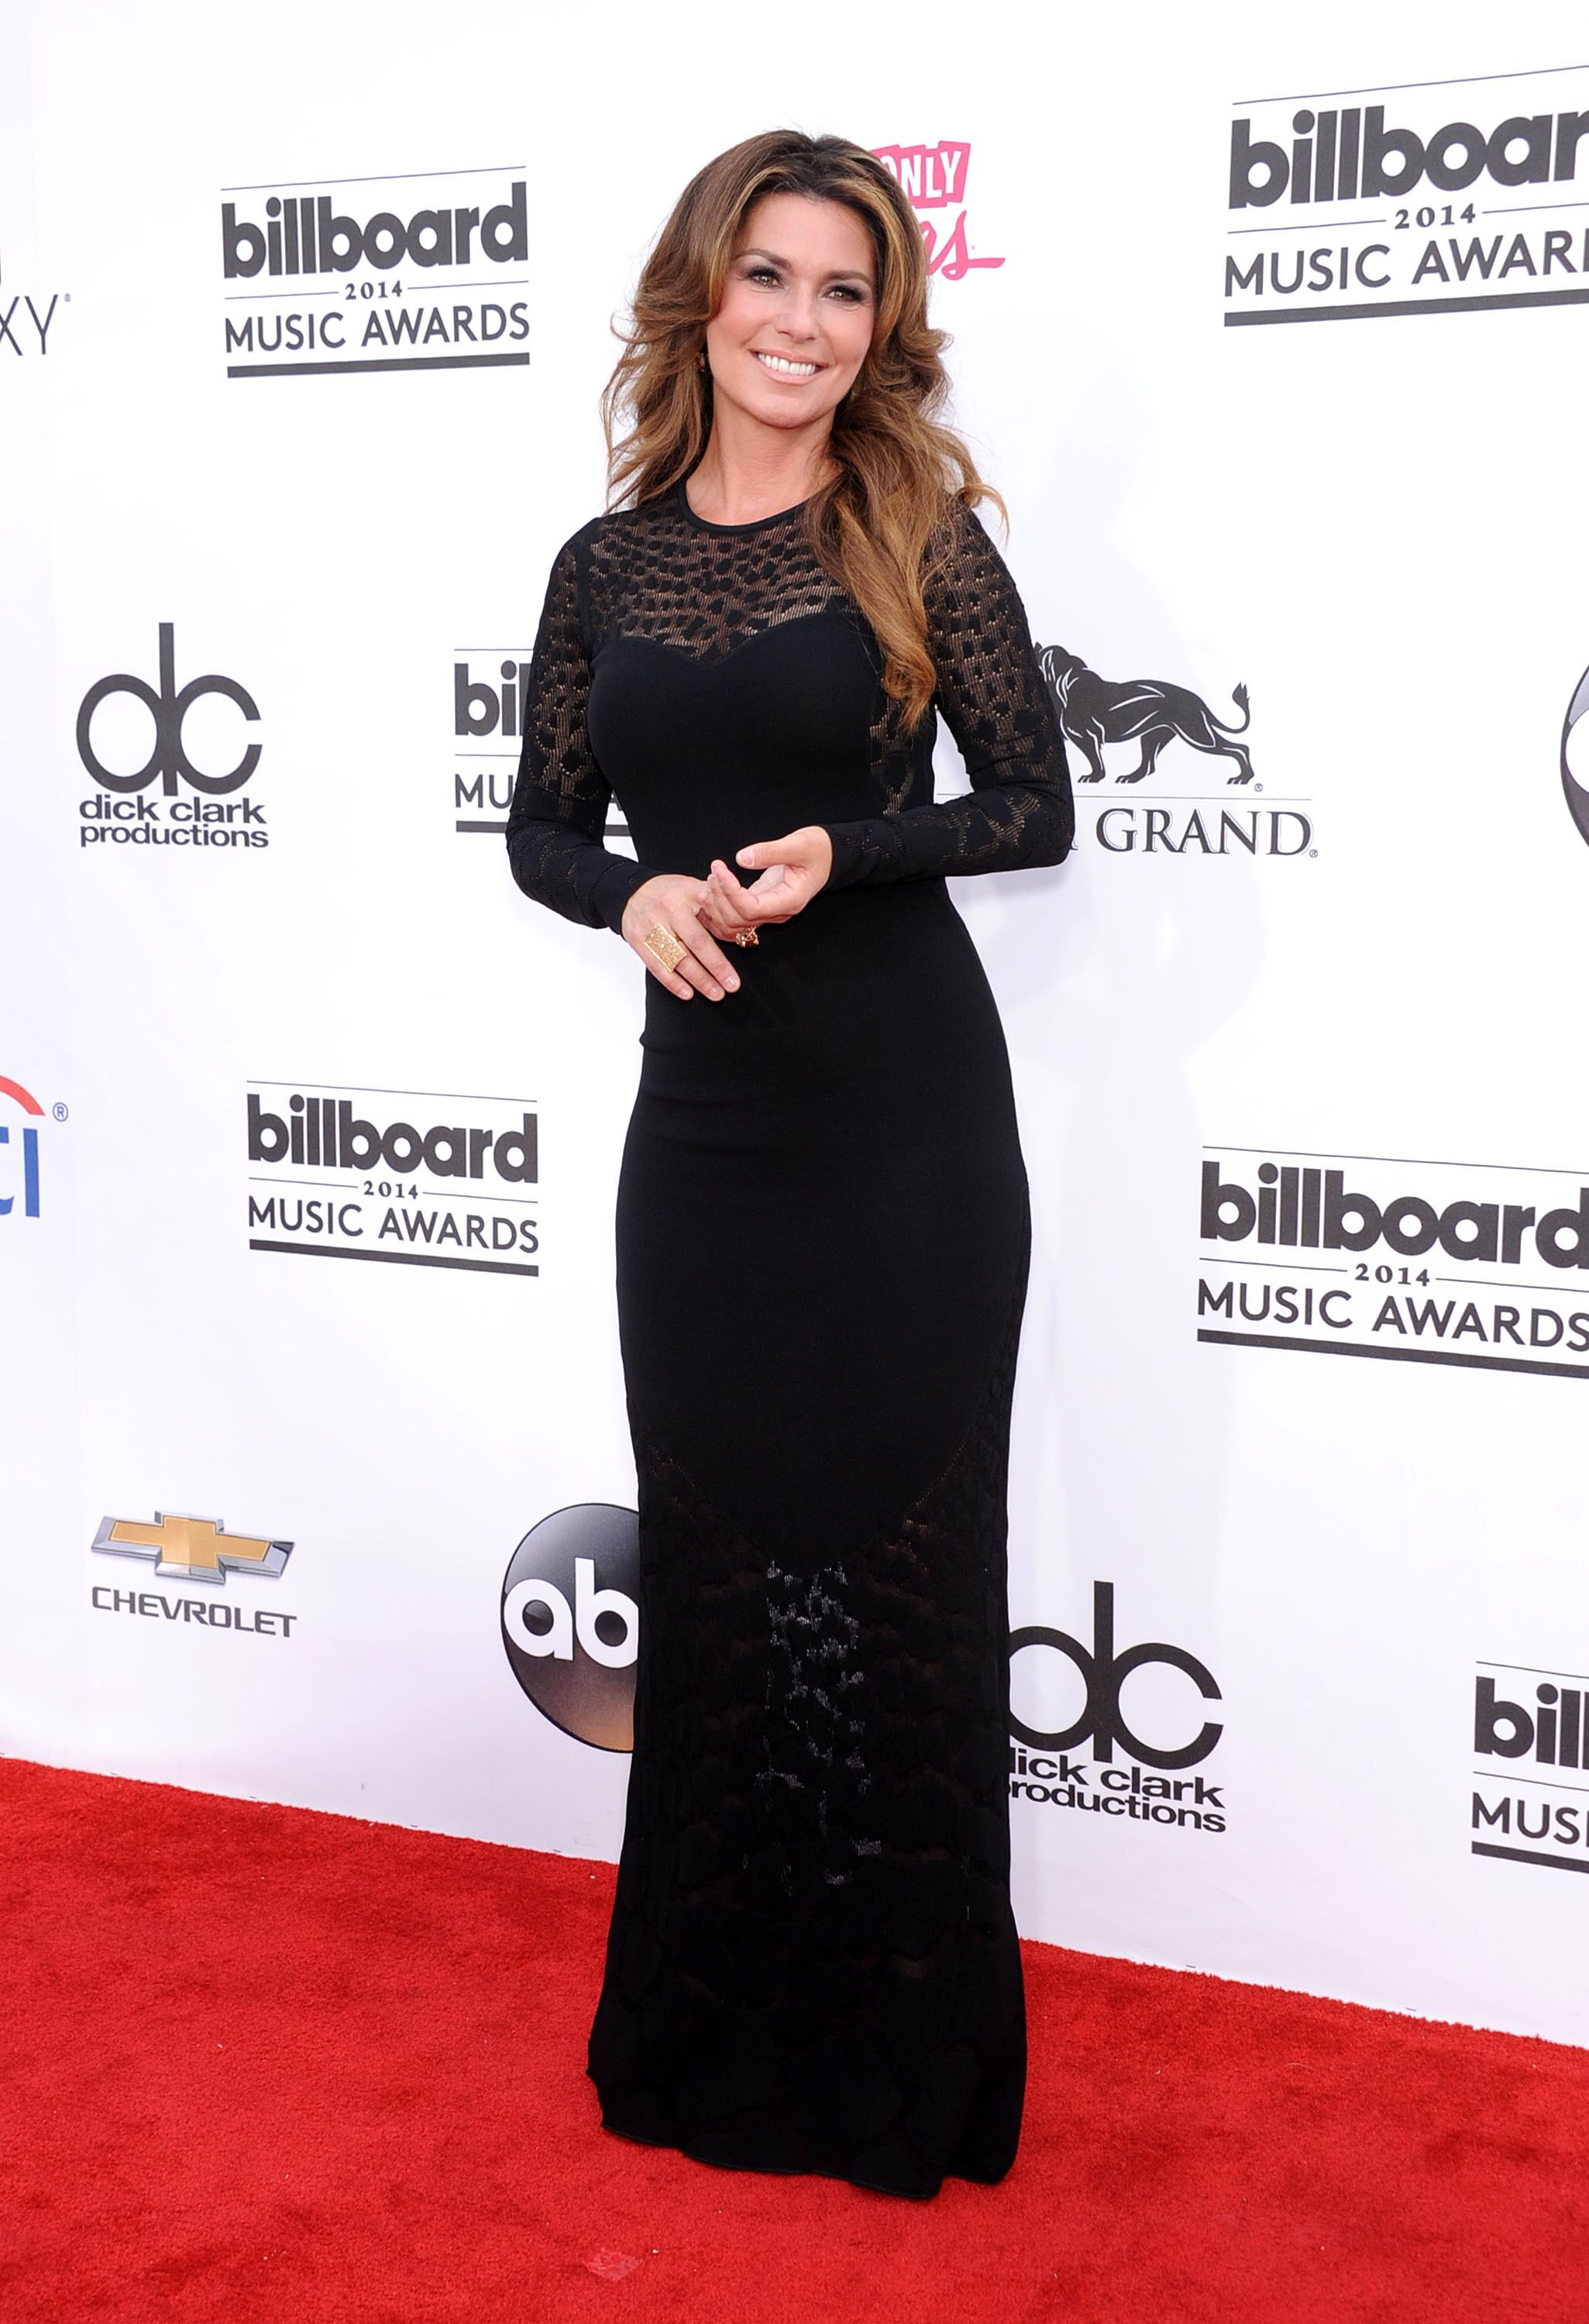 Shania Twain arrives to the Billboard Music Awards 2014. | Source: Shutterstock